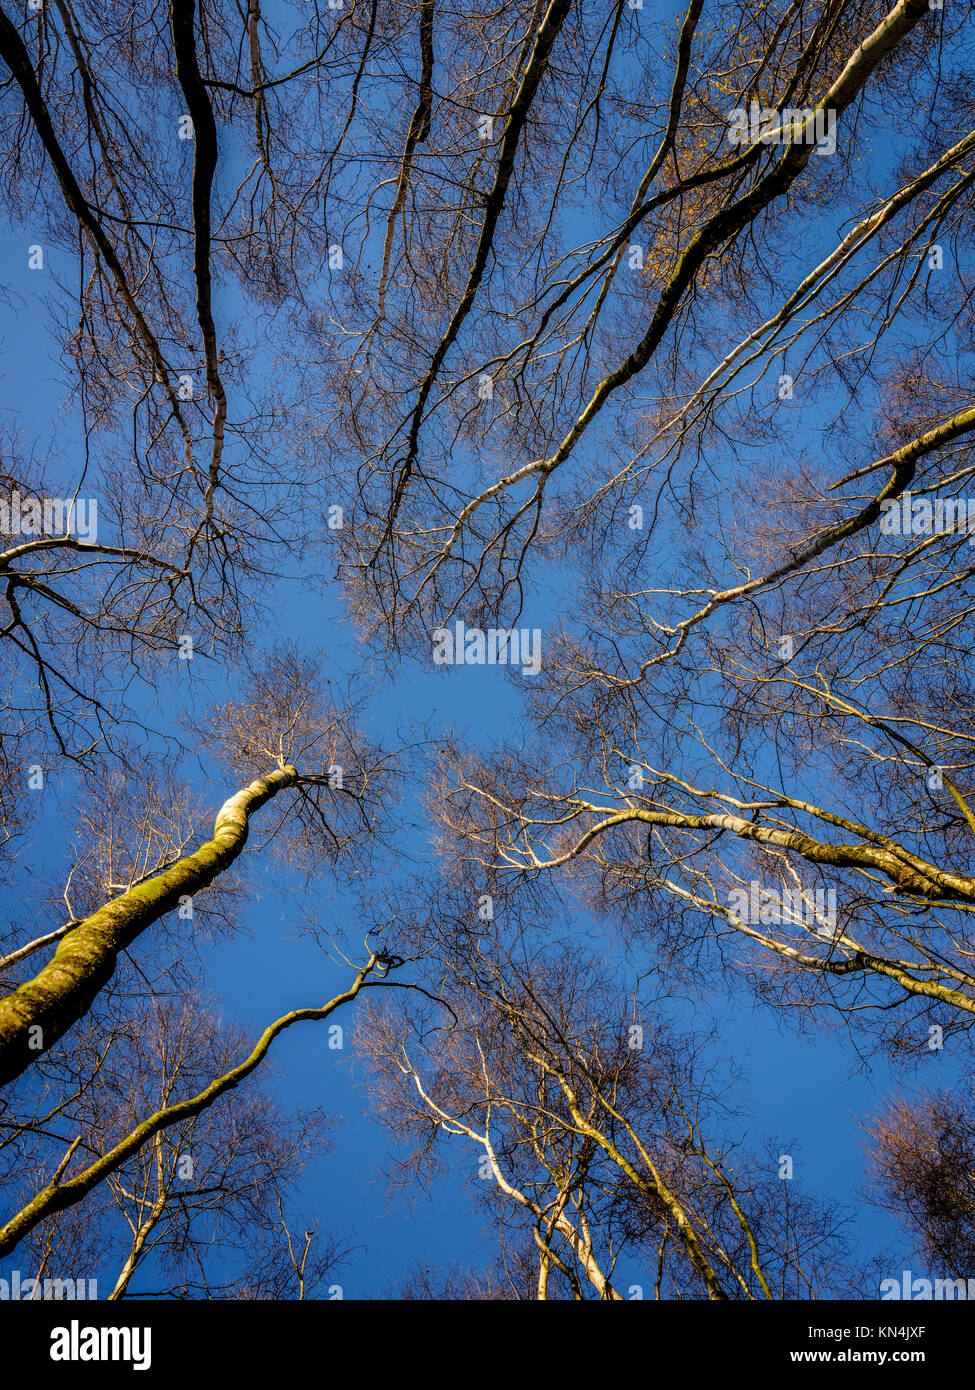 Skyward Silver Birch trees at the Bedgebury National Pinetum and Forest in on the Sussex, Kent border. - Stock Image